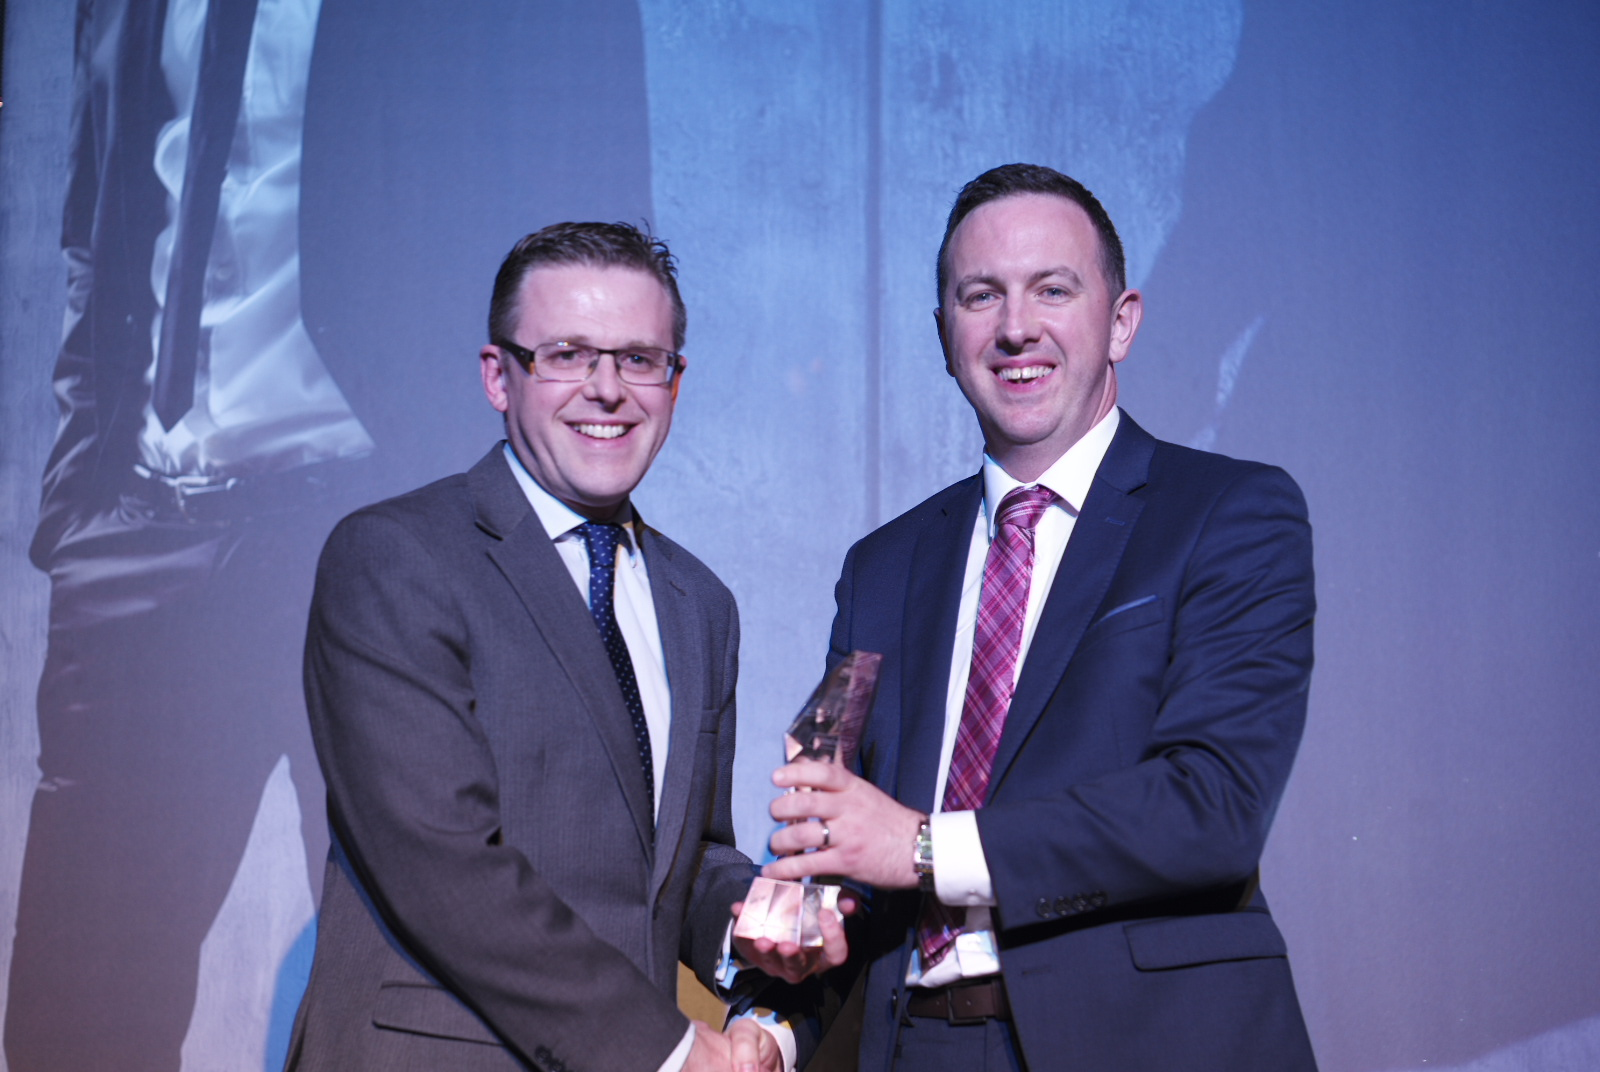 Grand Supreme Grocery Manager of the Year 2019 Donnie Christian of Londis DCU